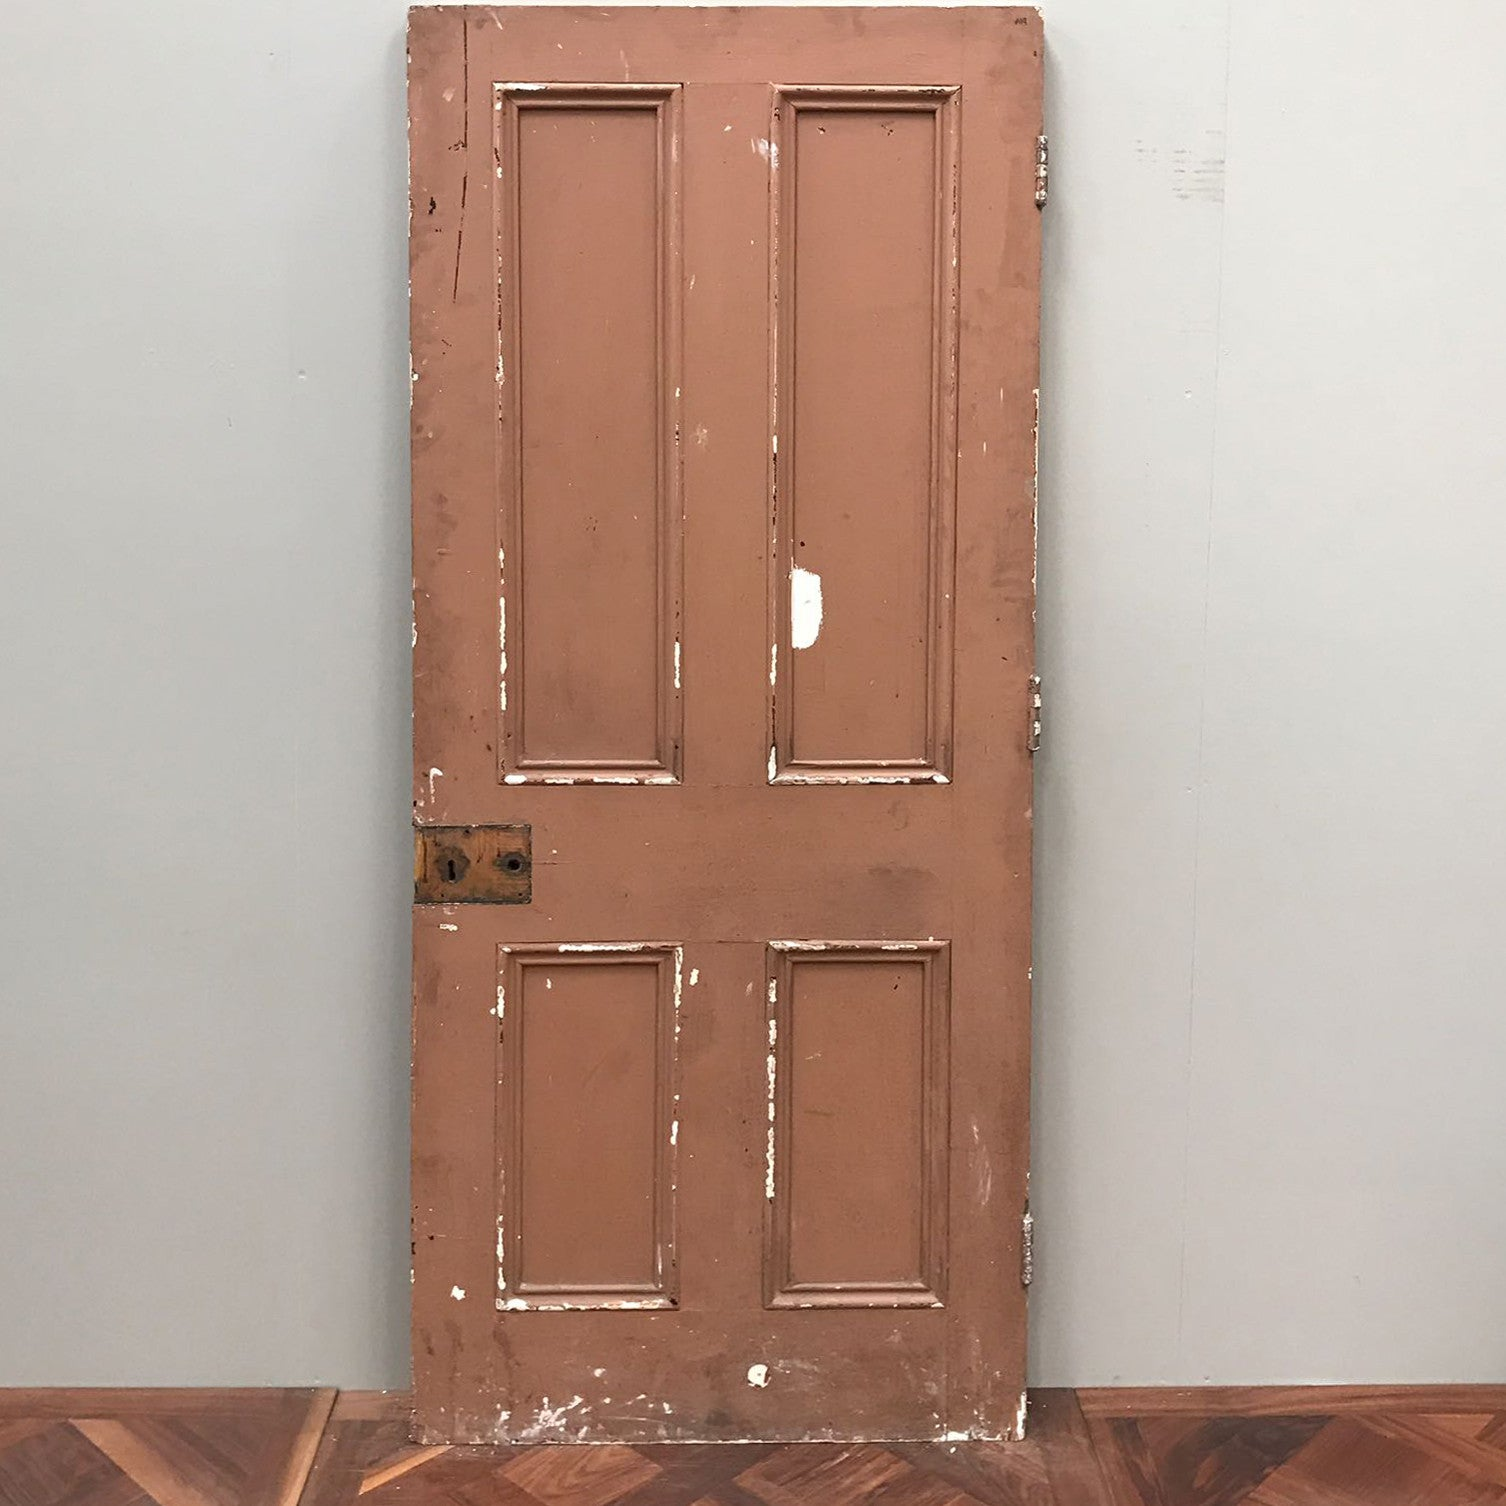 Victorian Four Panel Door - 200cm x 80.5cm x 5cm - architectural-forum